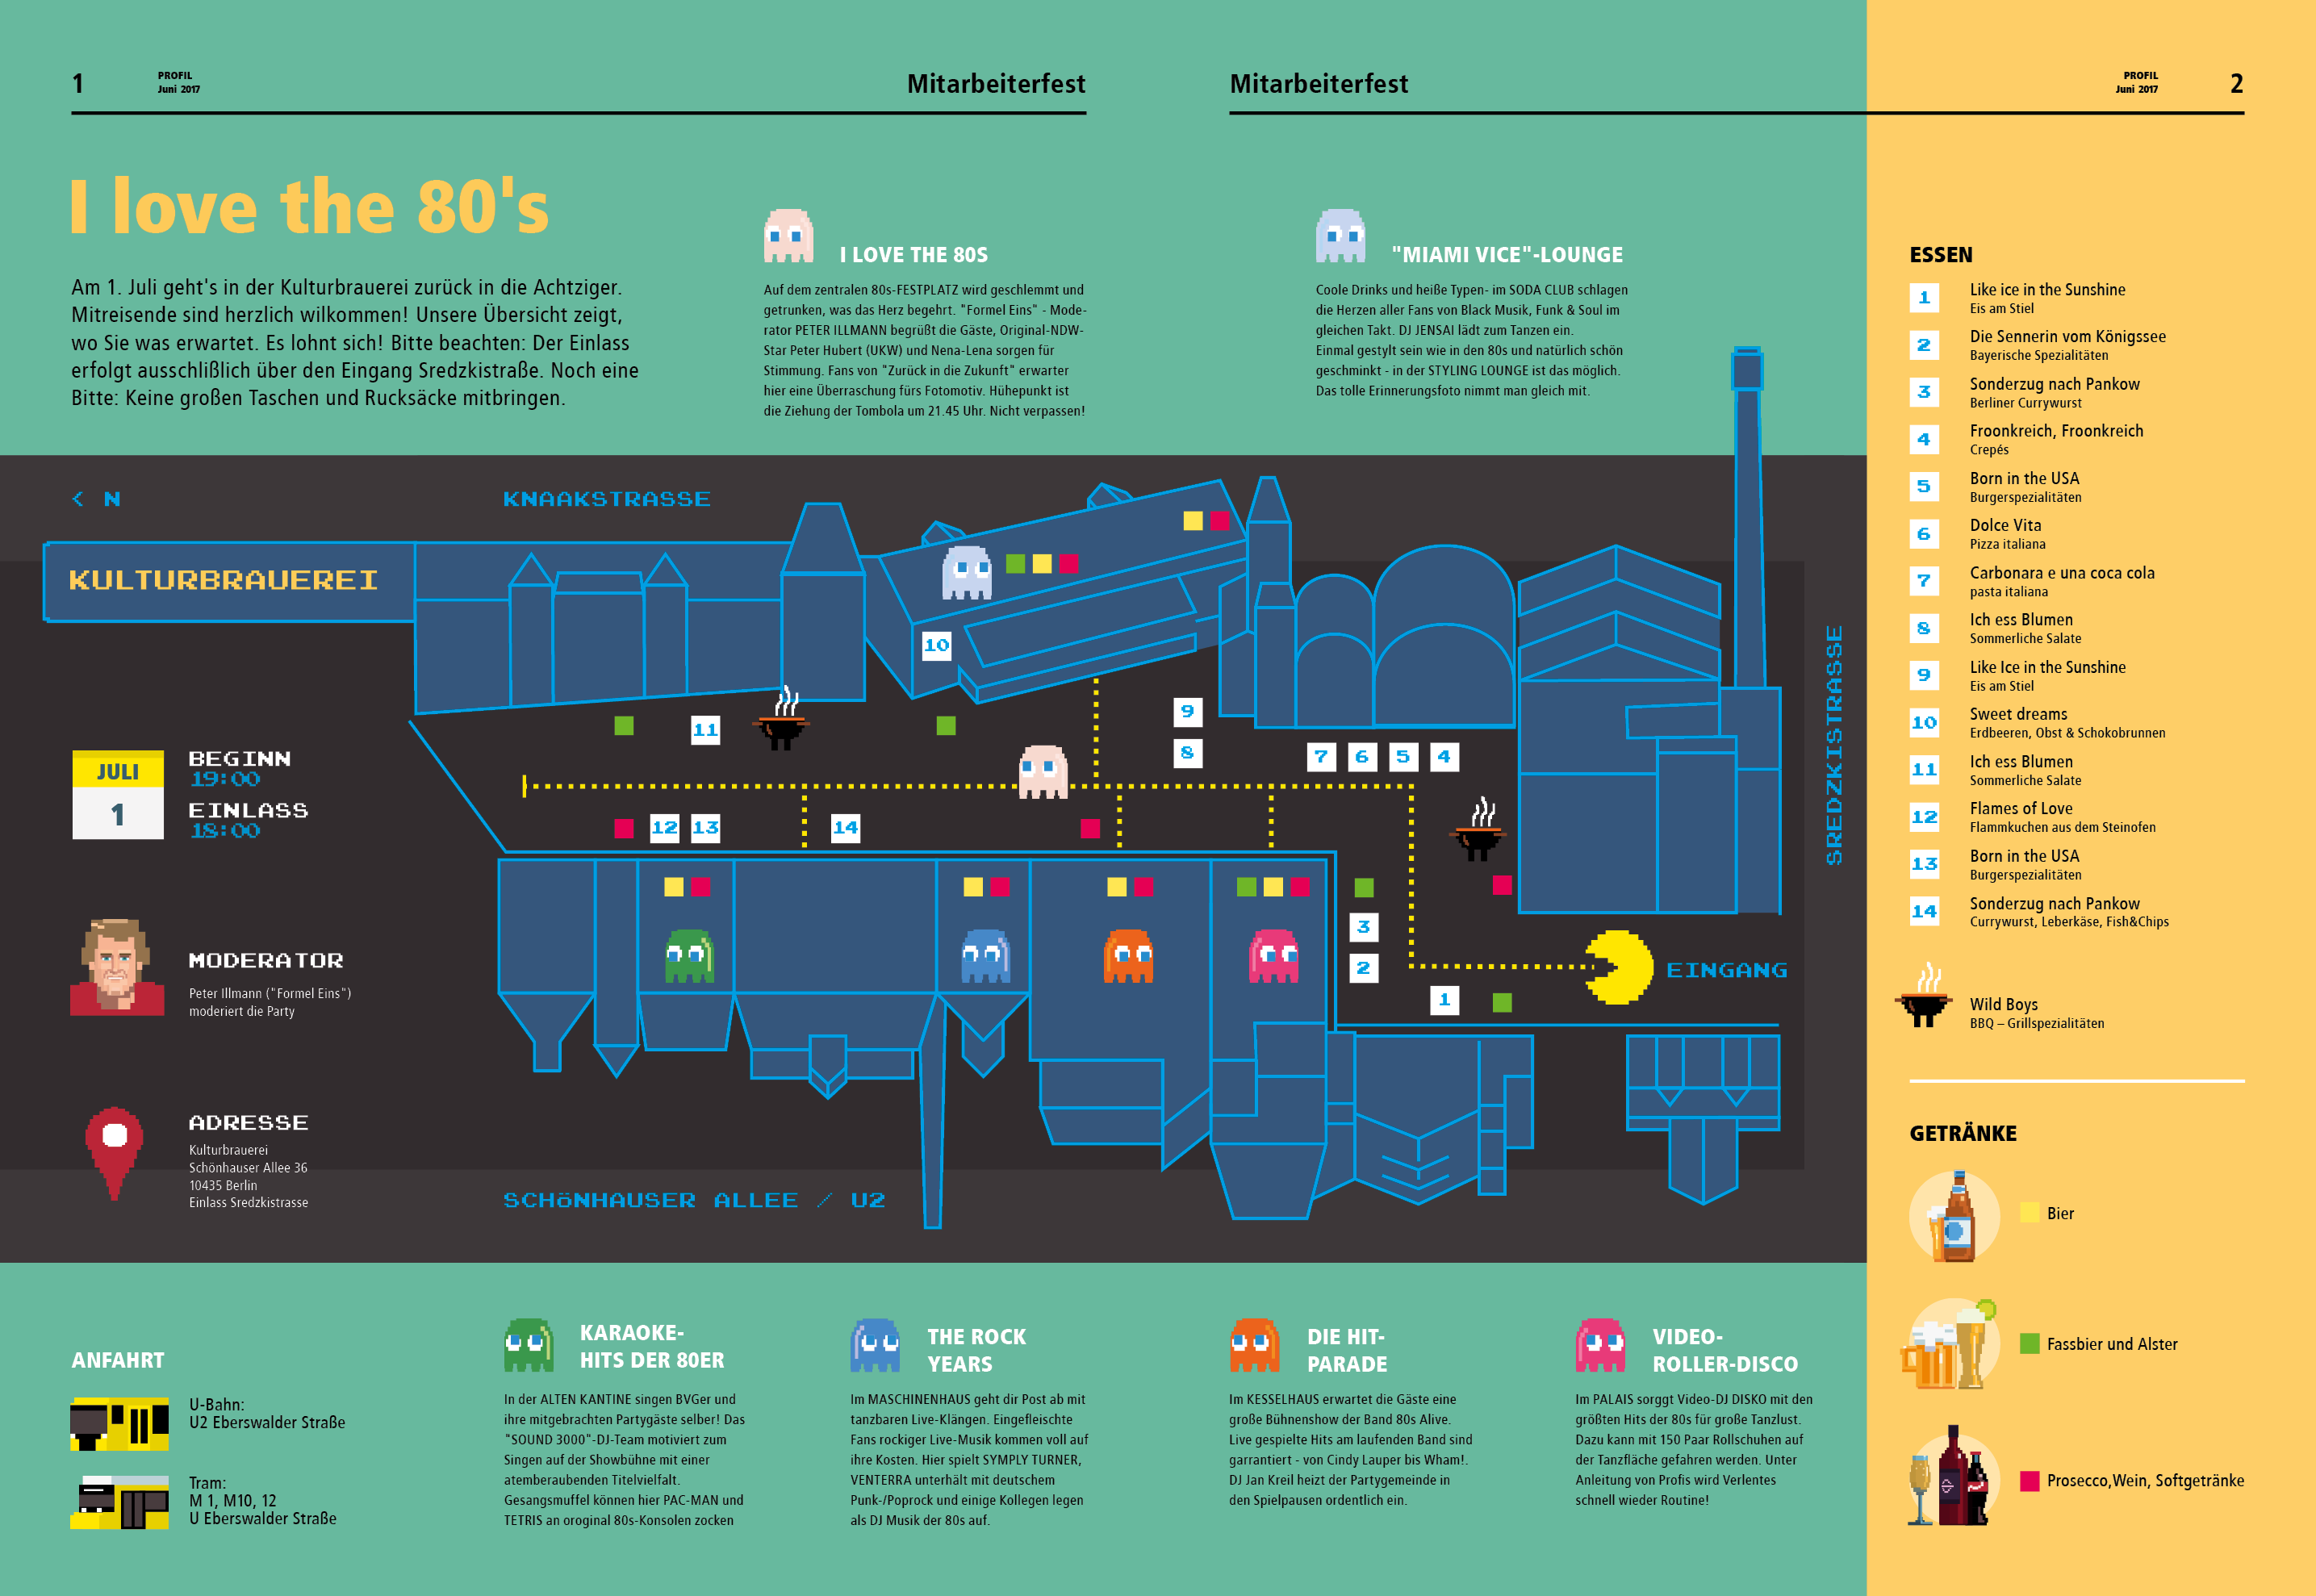 BVG Infografik - I love the 80s